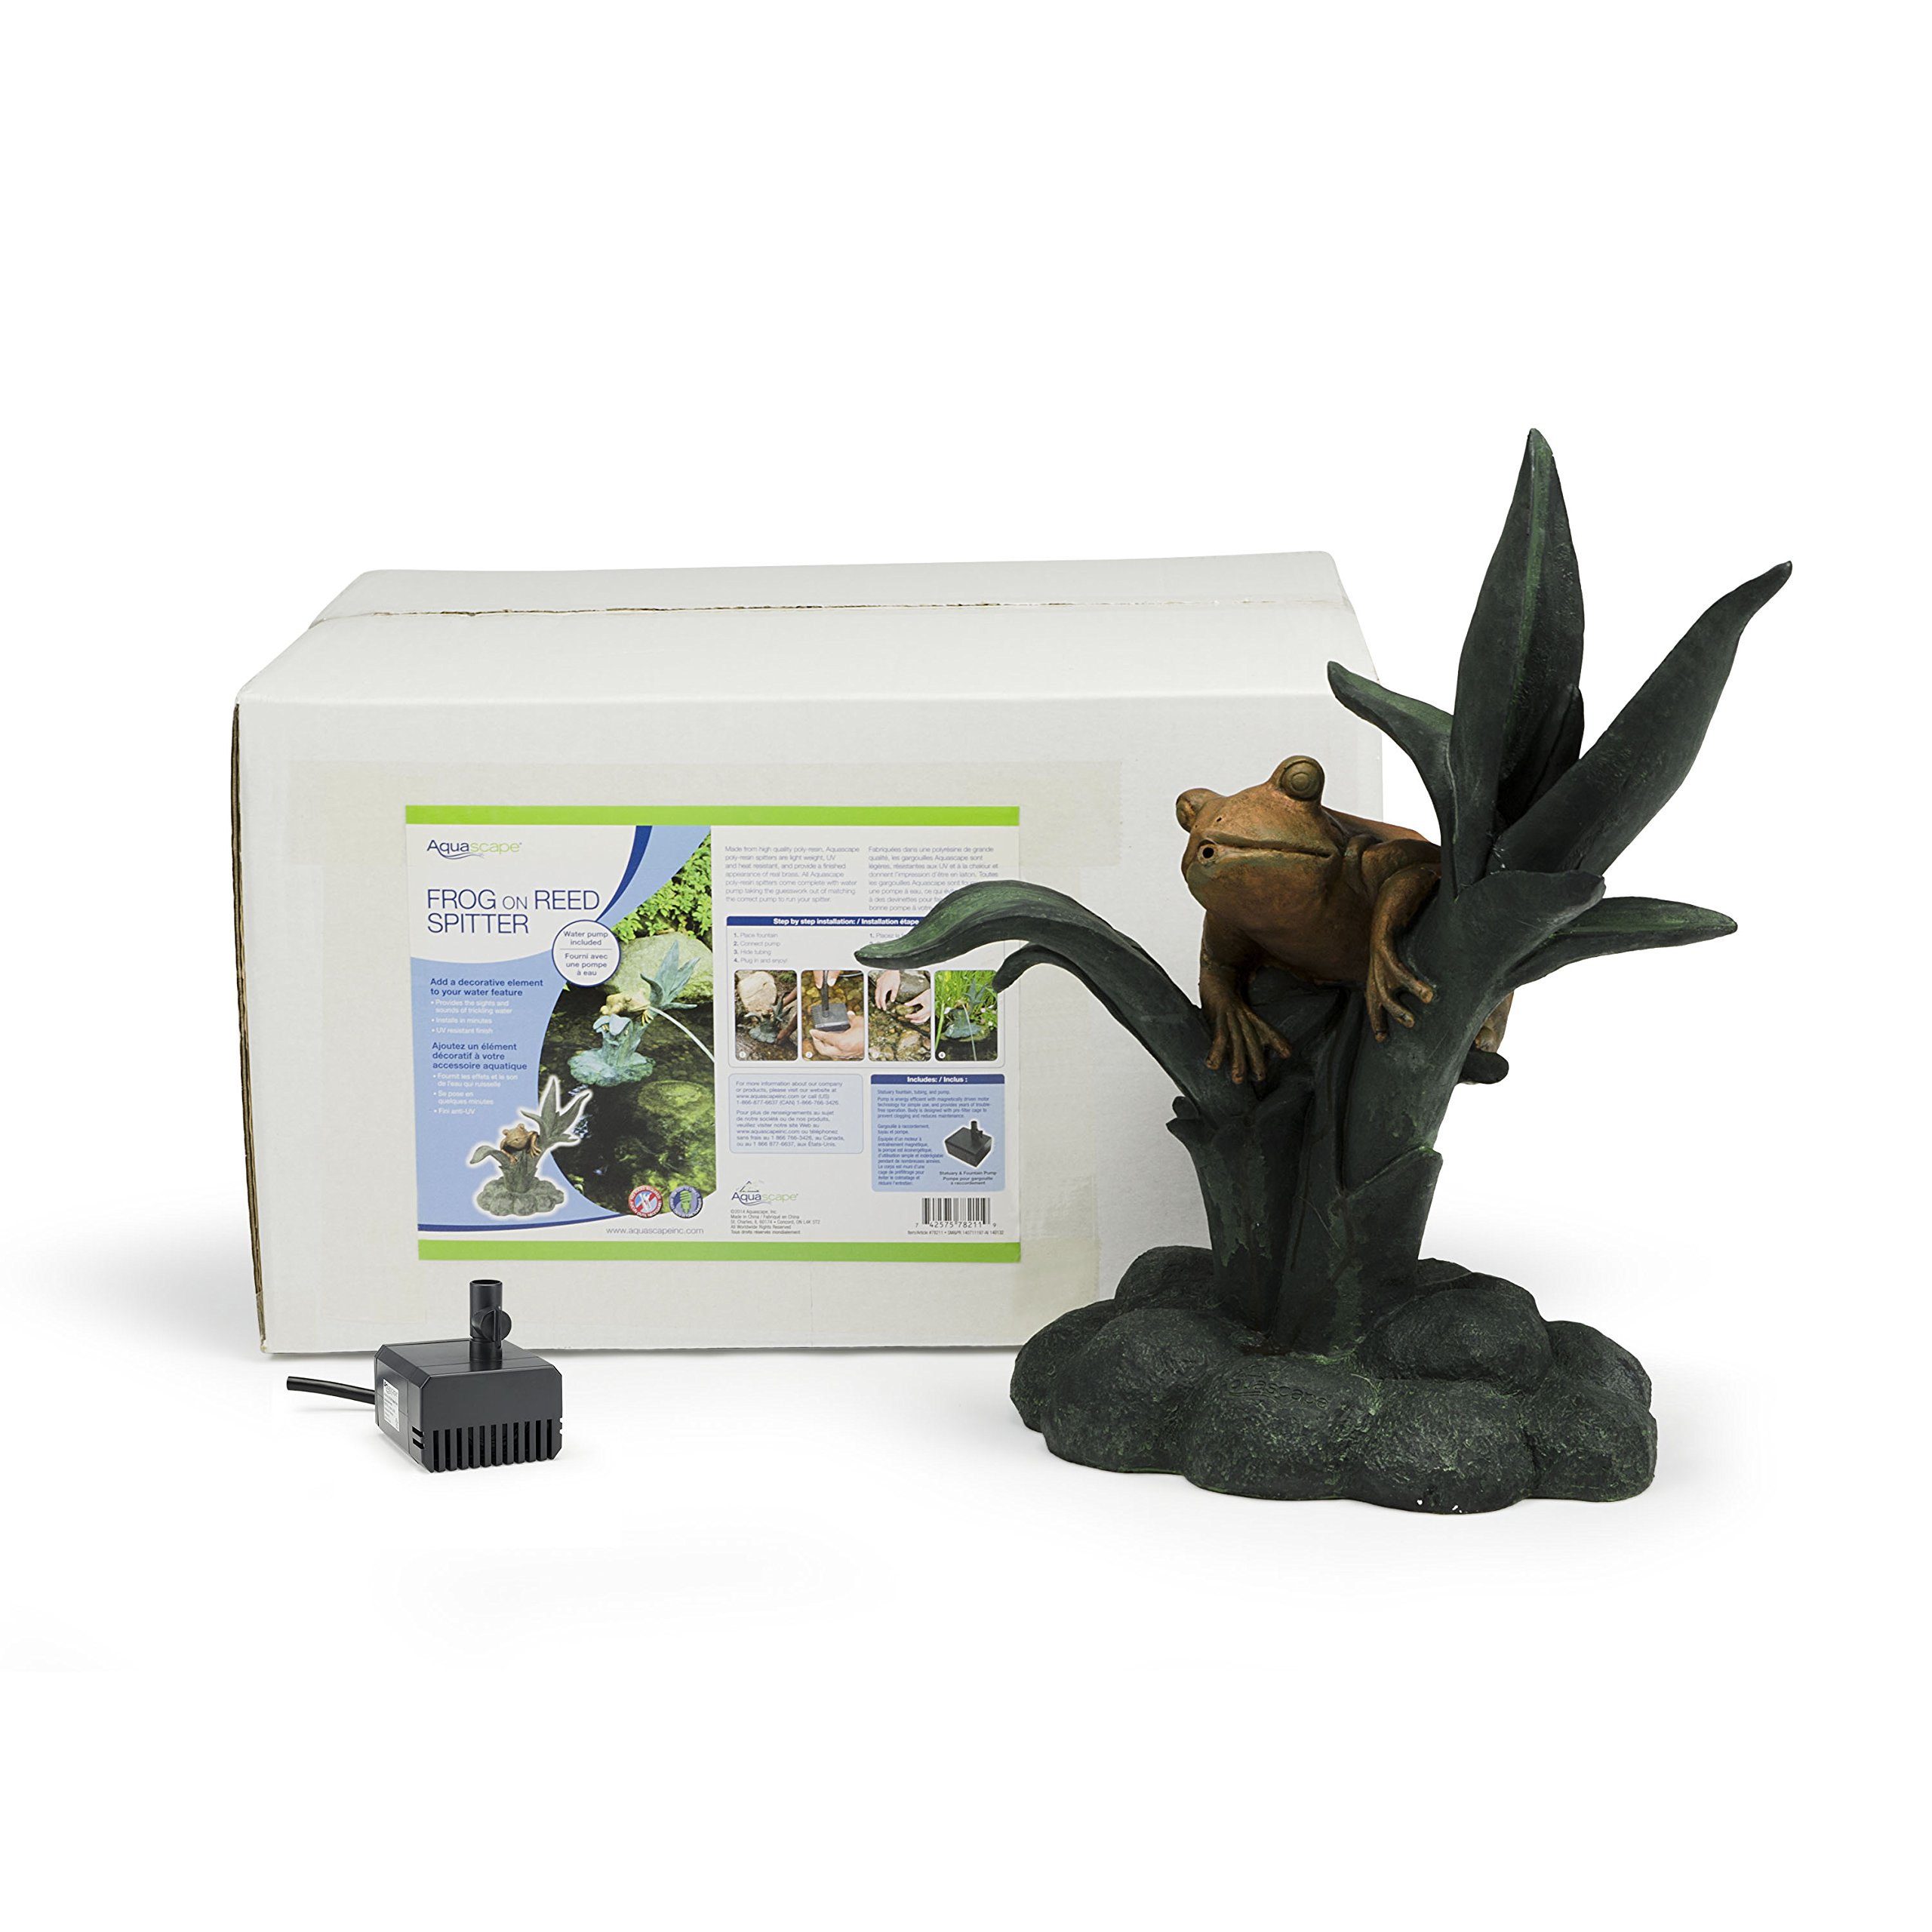 Aquascape Frog on Reed Fountain Spitter with Pump for Pond, Garden and Water Features | 78211